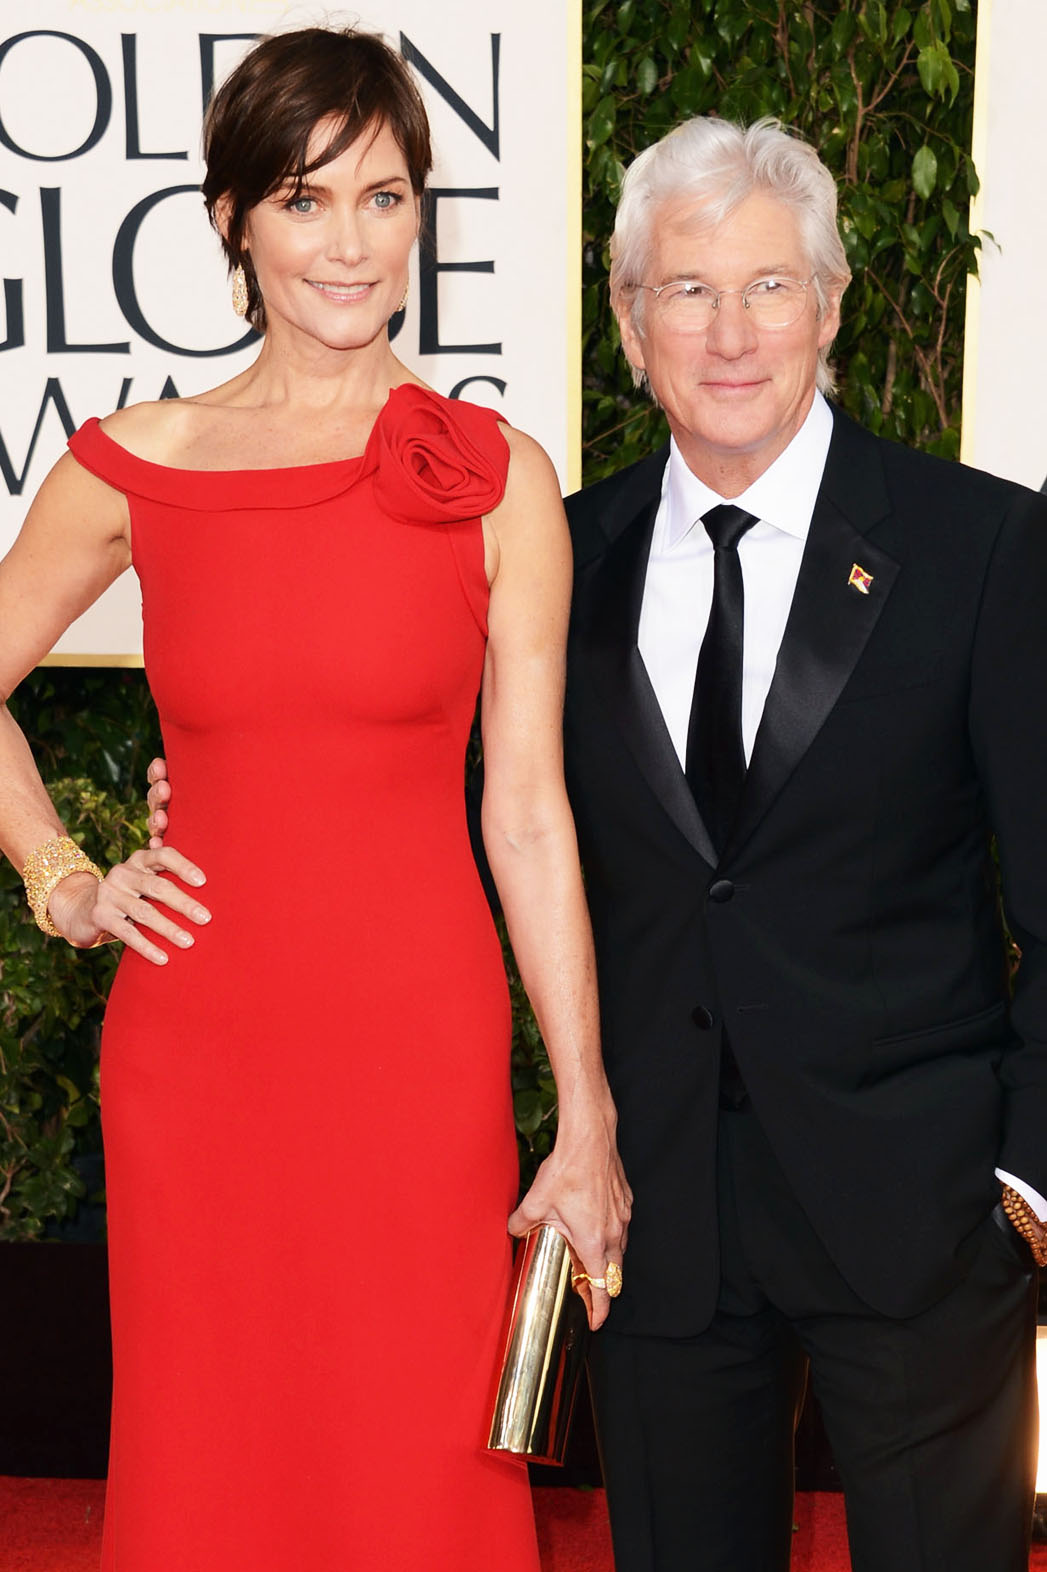 Richard Gere and Carey Lowell Golden Globes - P 2013